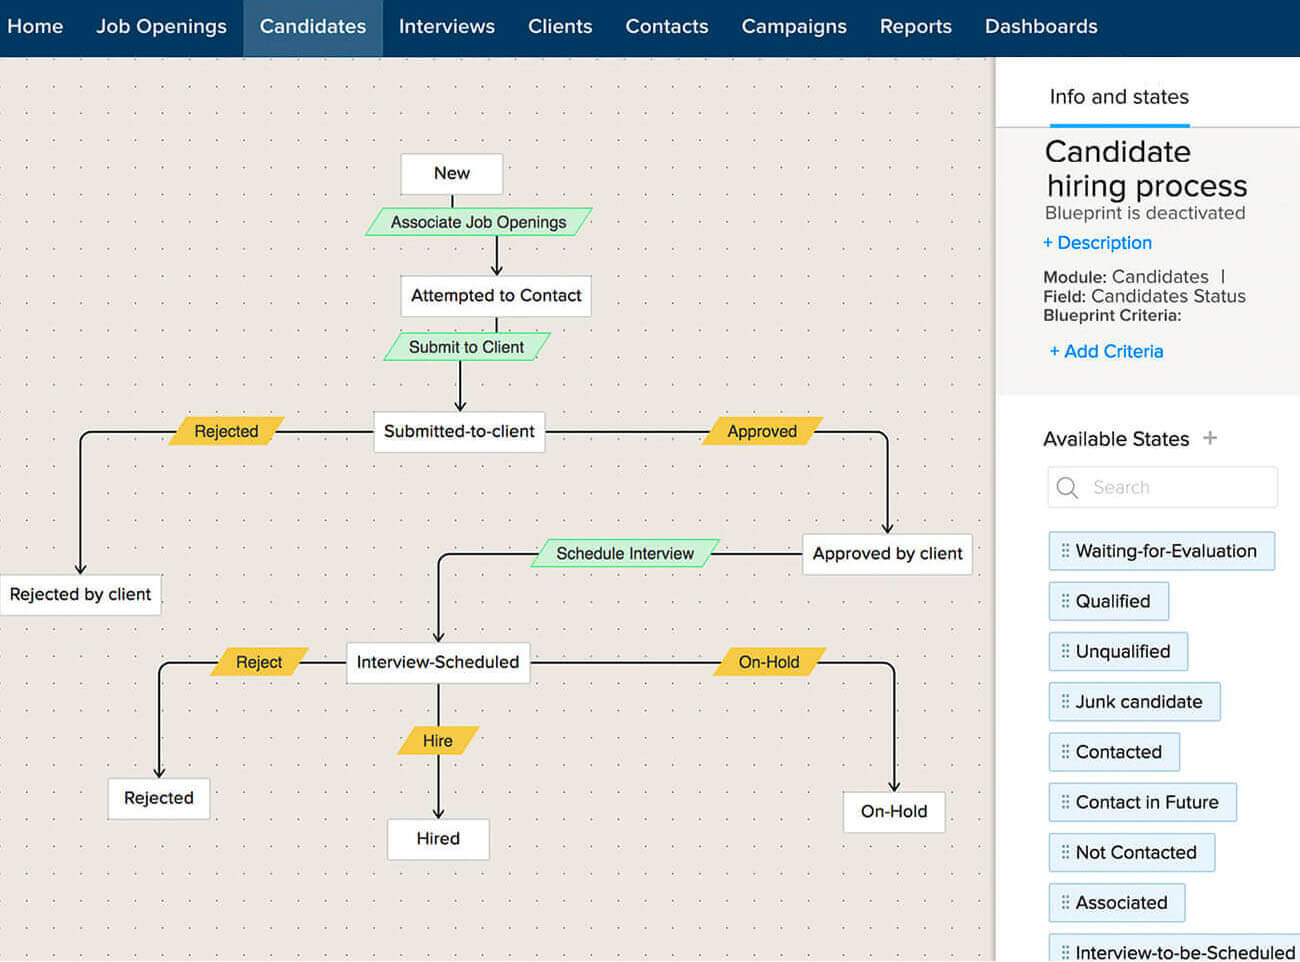 human capital management software cloud hcm software zoho recruitwith a simple drag and drop option you can create your workflow, specify the sequence of actions, decide who can do what, and set conditions to complete the